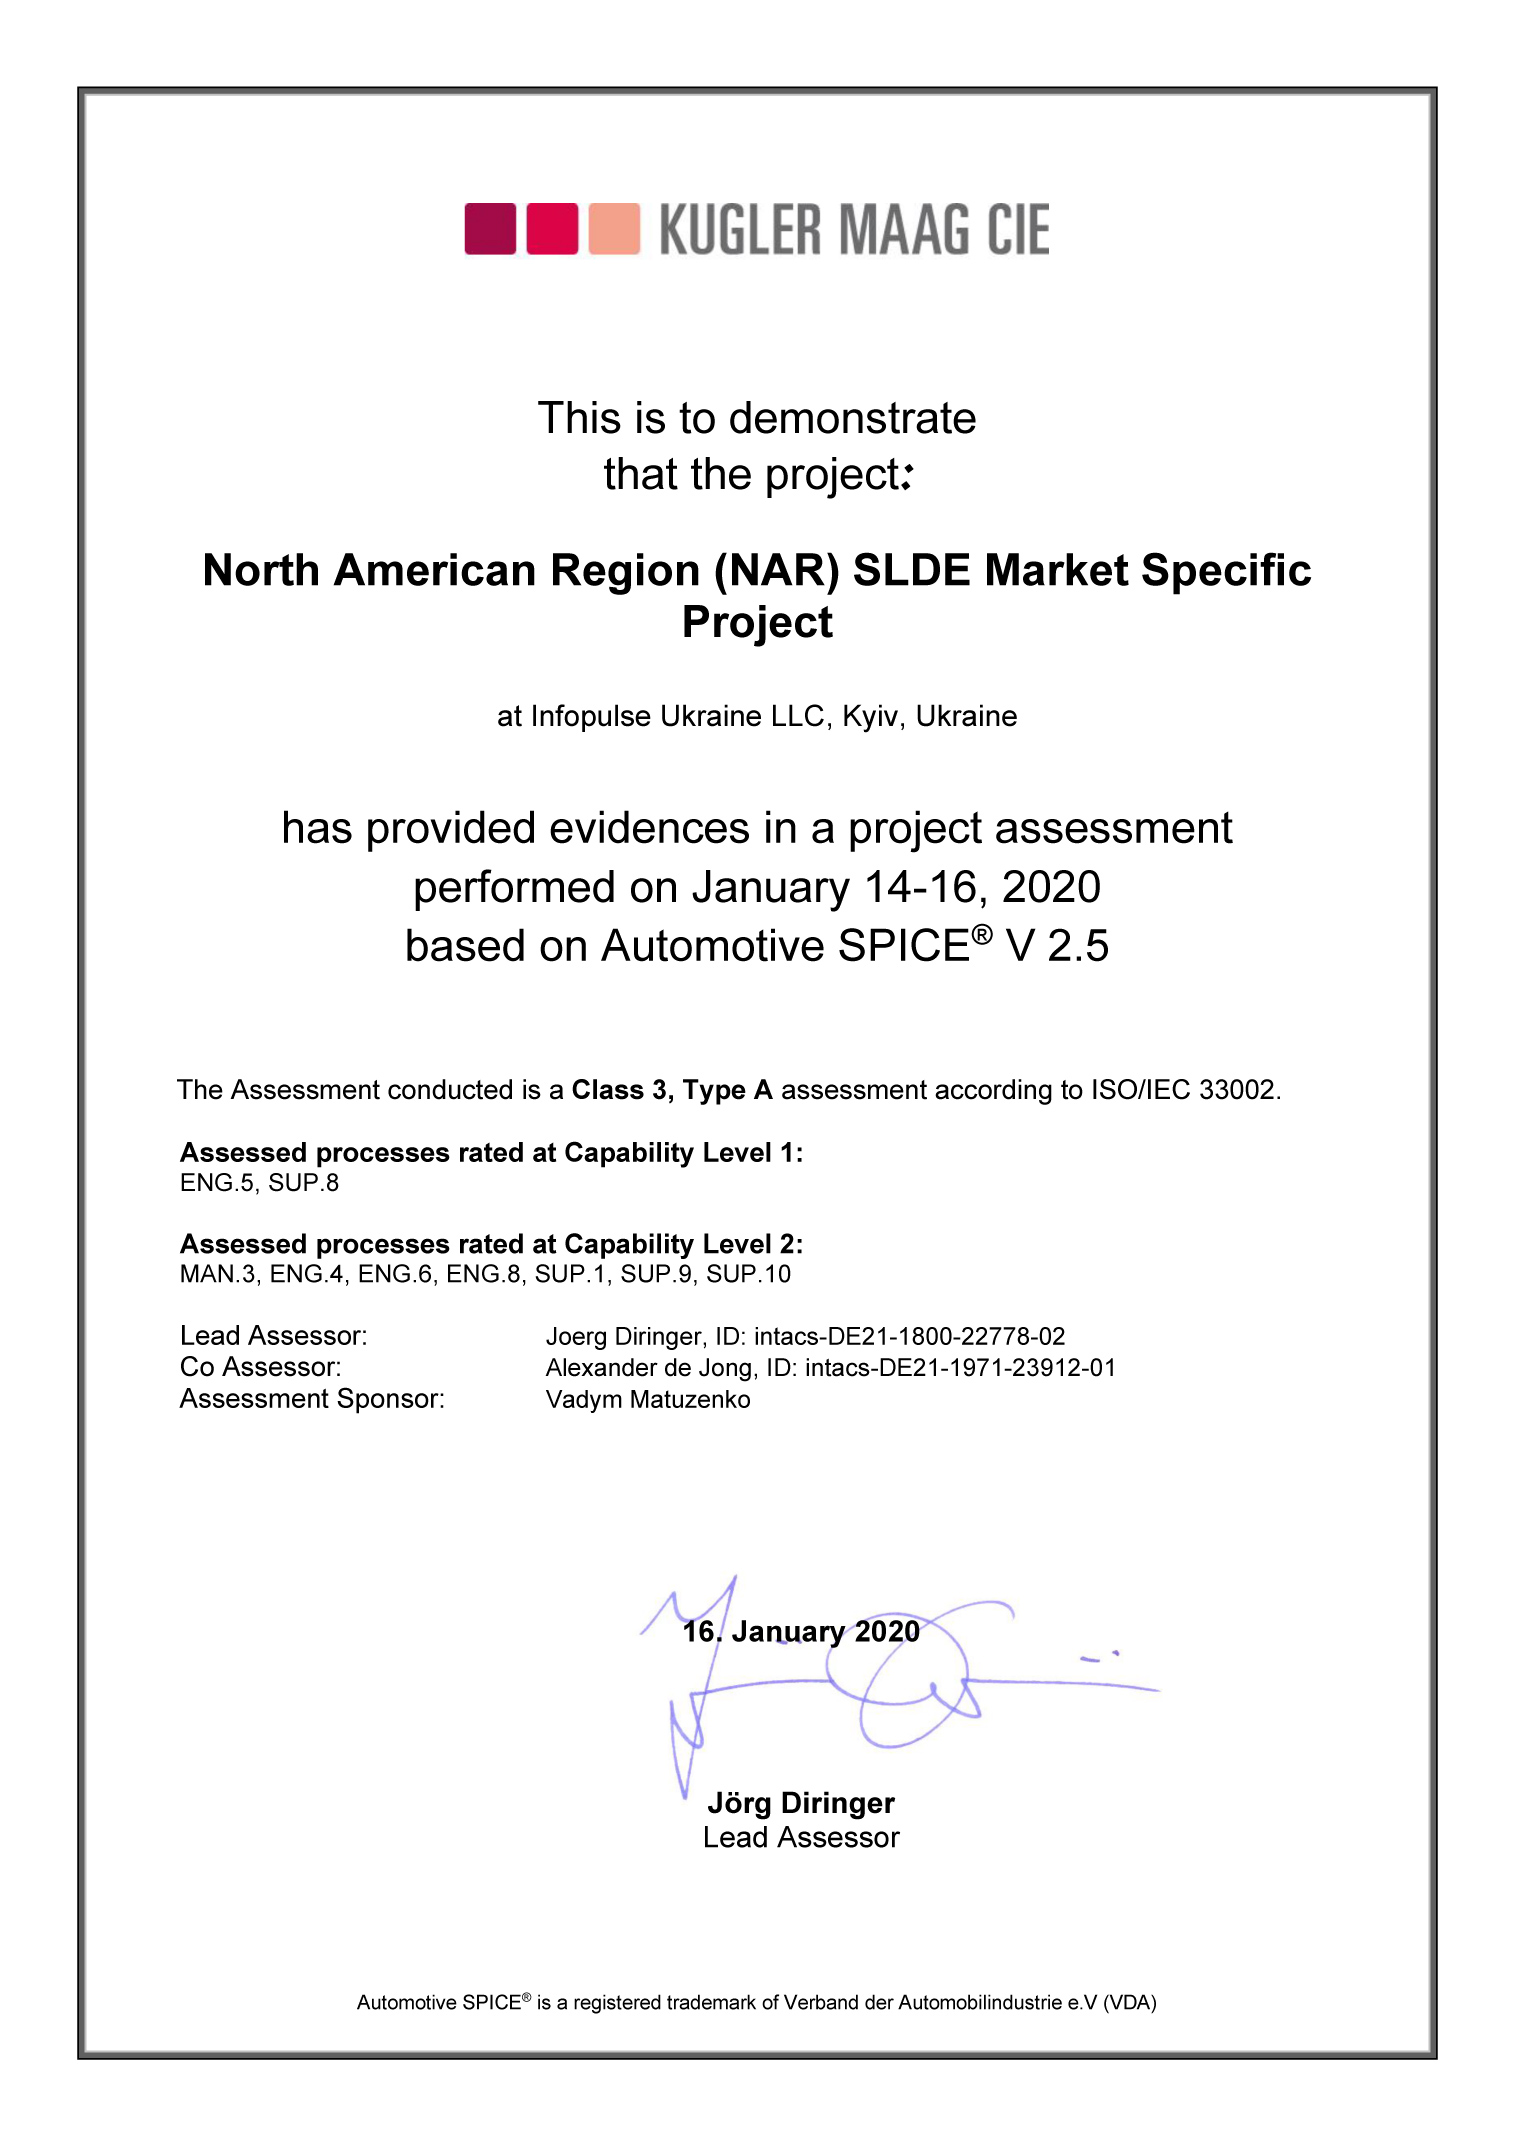 Infopulse Automotive Project is Officially ASPICE v2.5 Certified - 1 - Infopulse